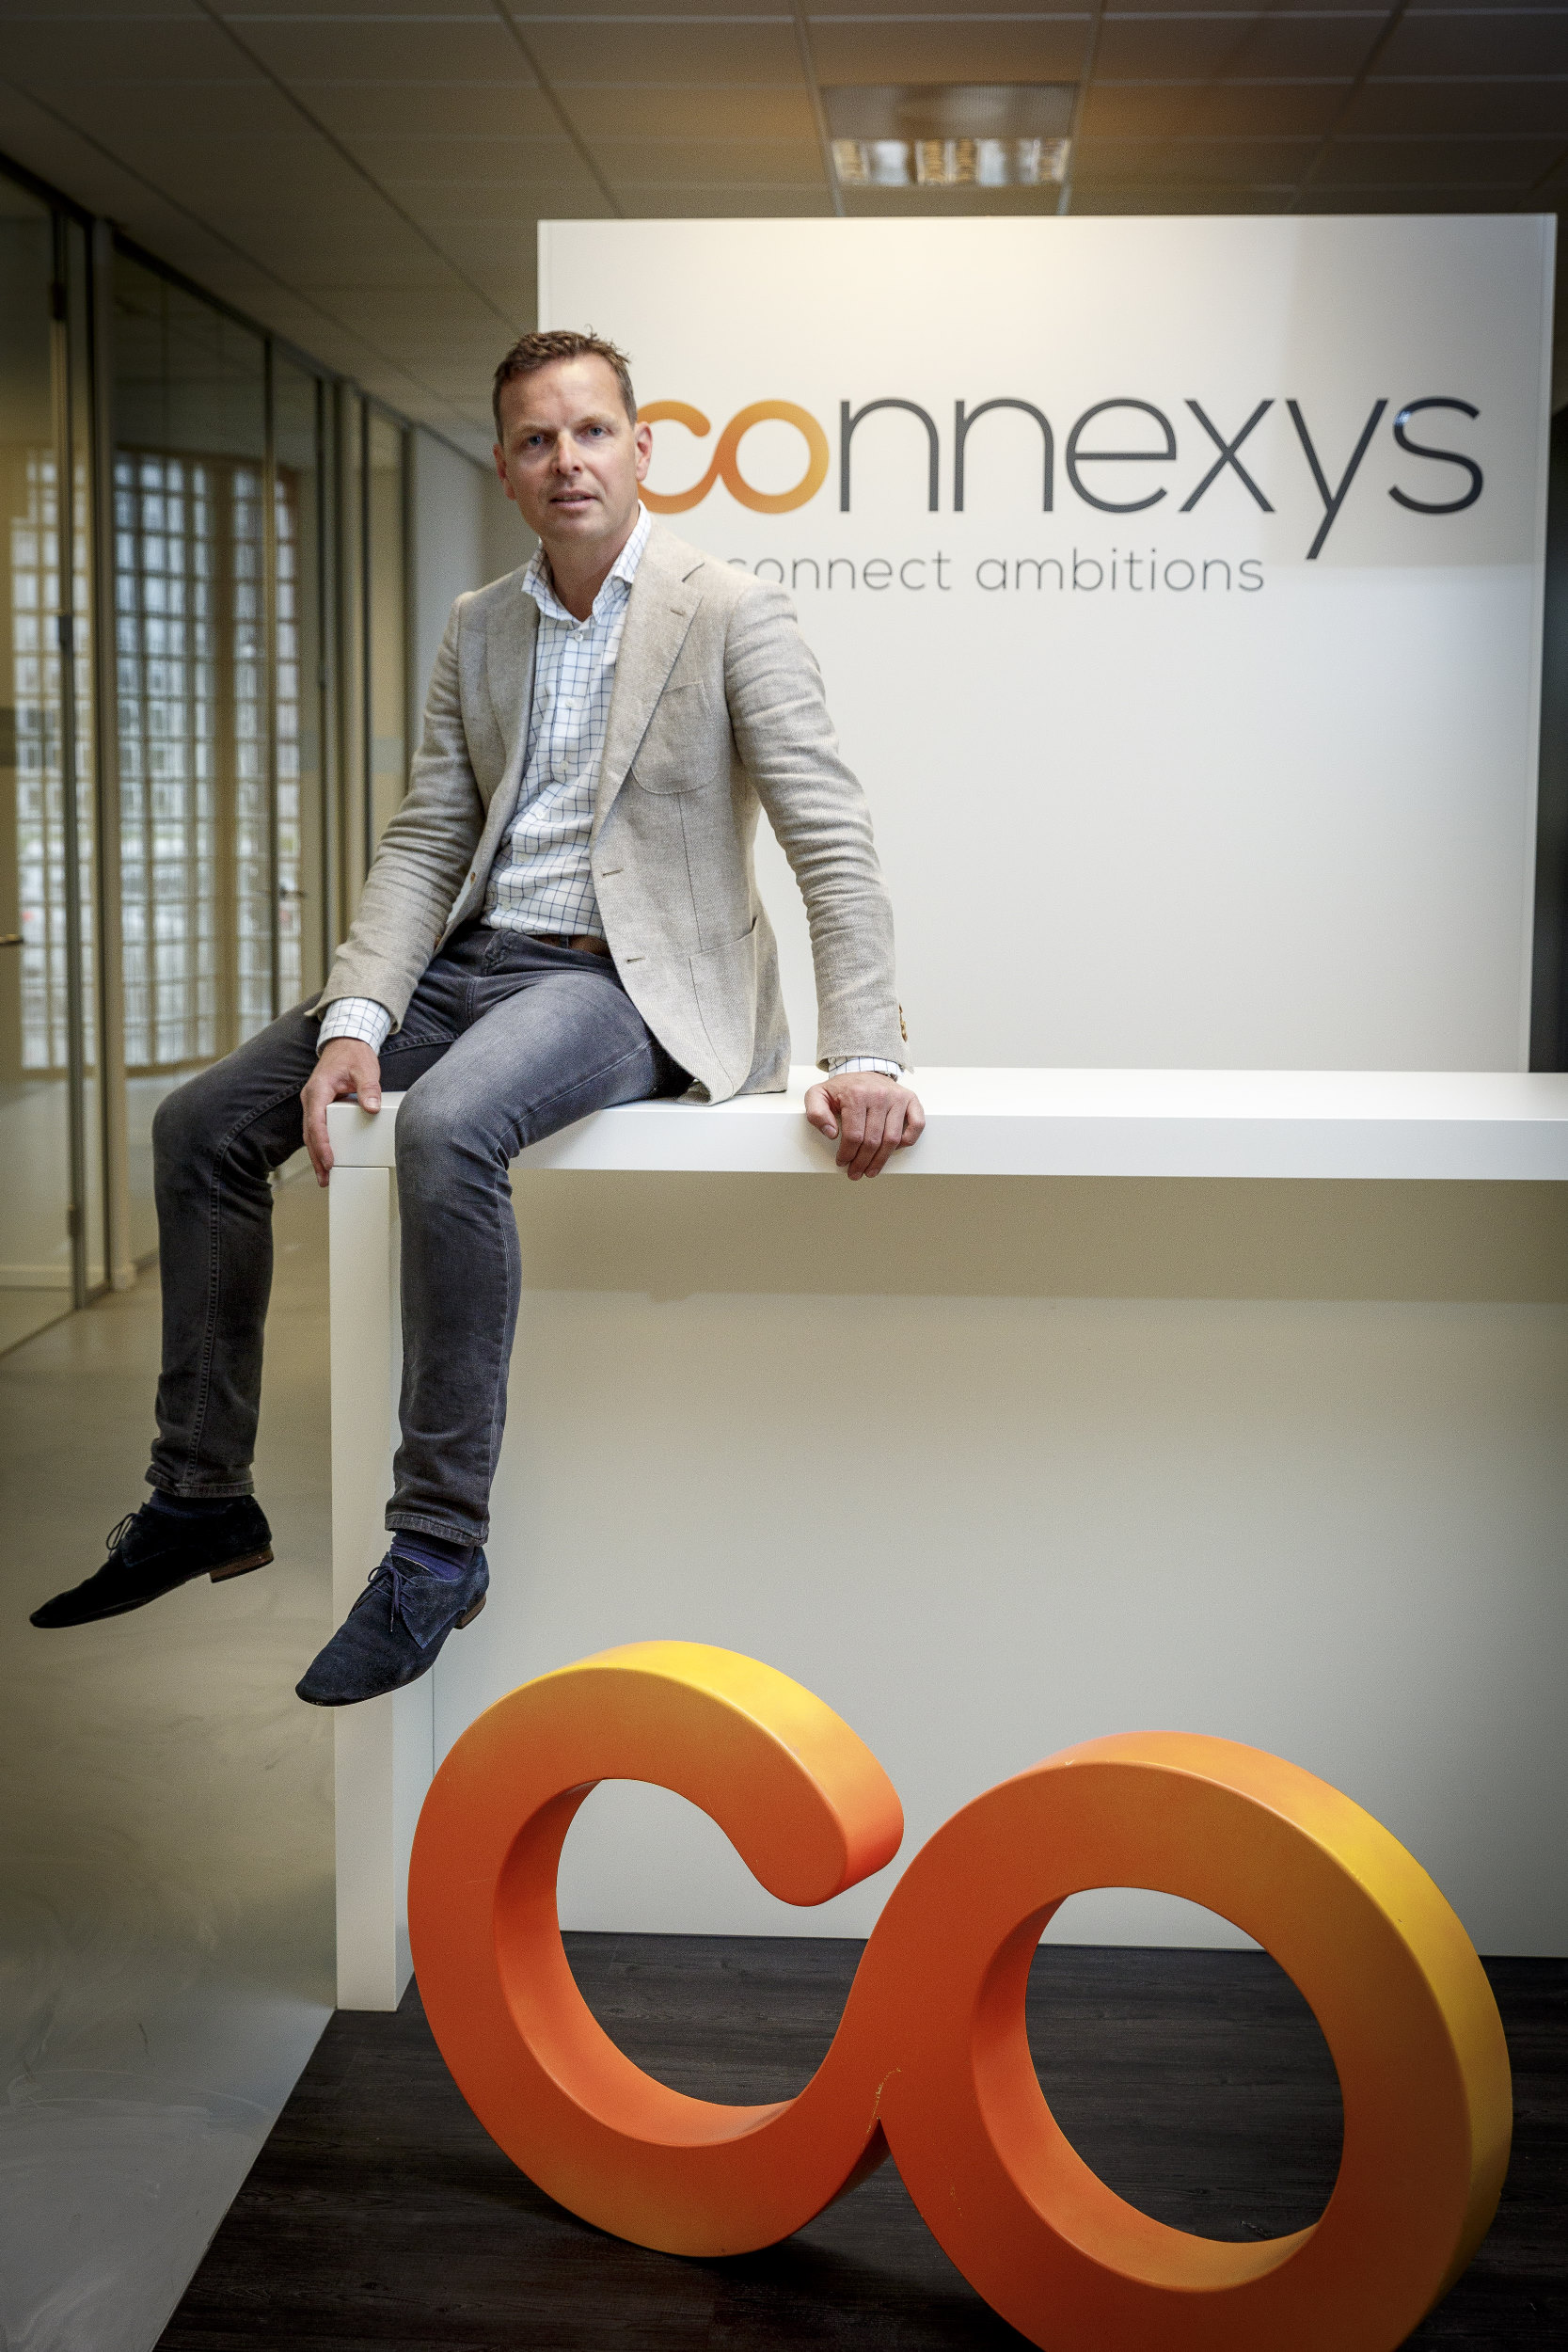 portret Jan van Goch CMO Connexys Rotterdam recruitment software mensen